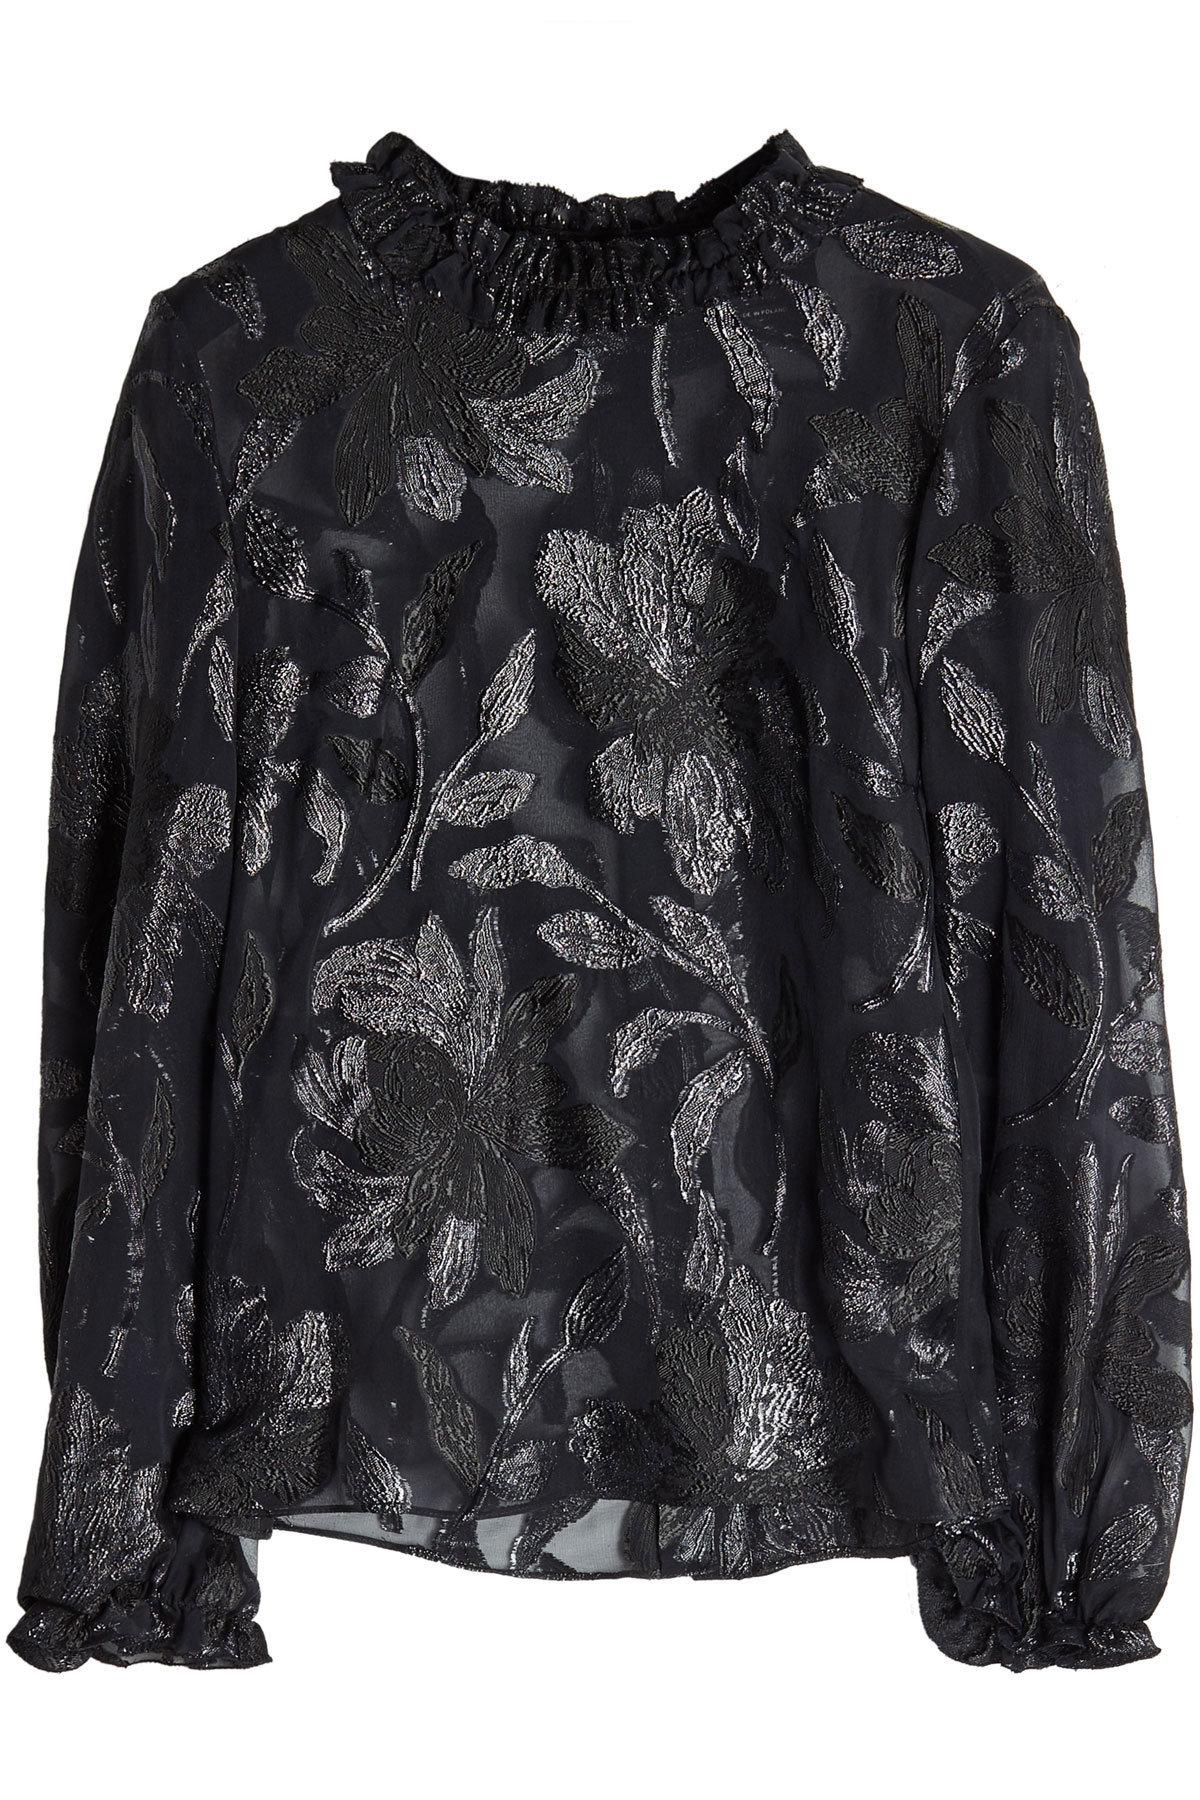 Isabel Marant Blouse With Metallic Thread In Black